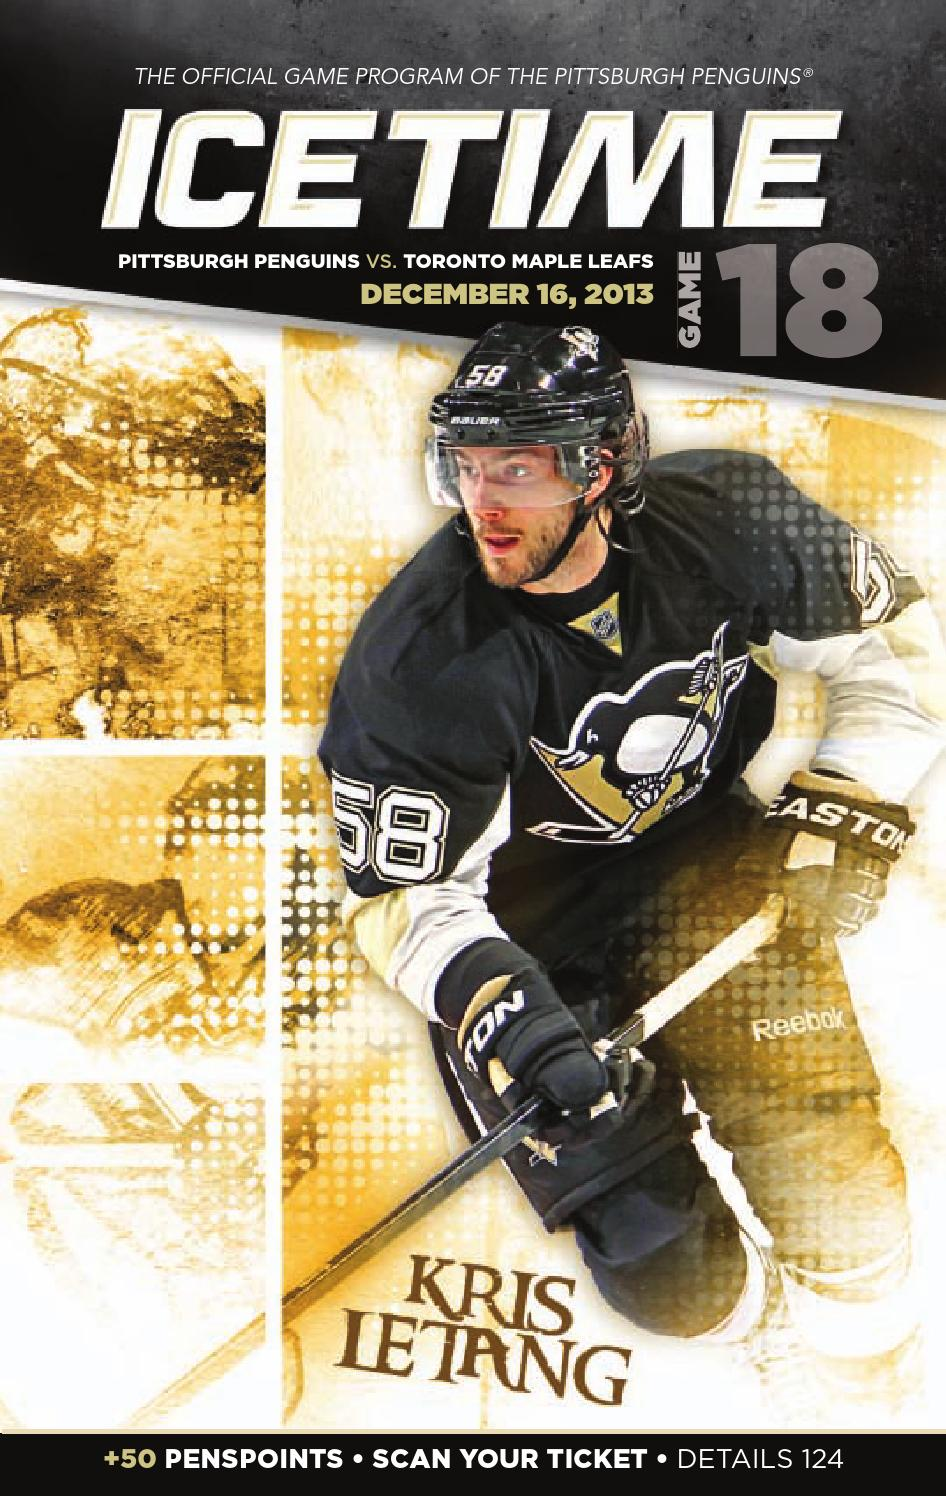 24a485b14 IceTime - Game 18 vs. Toronto Maple Leafs 12 16 13. IceTime is the official  game program of the Pittsburgh Penguins